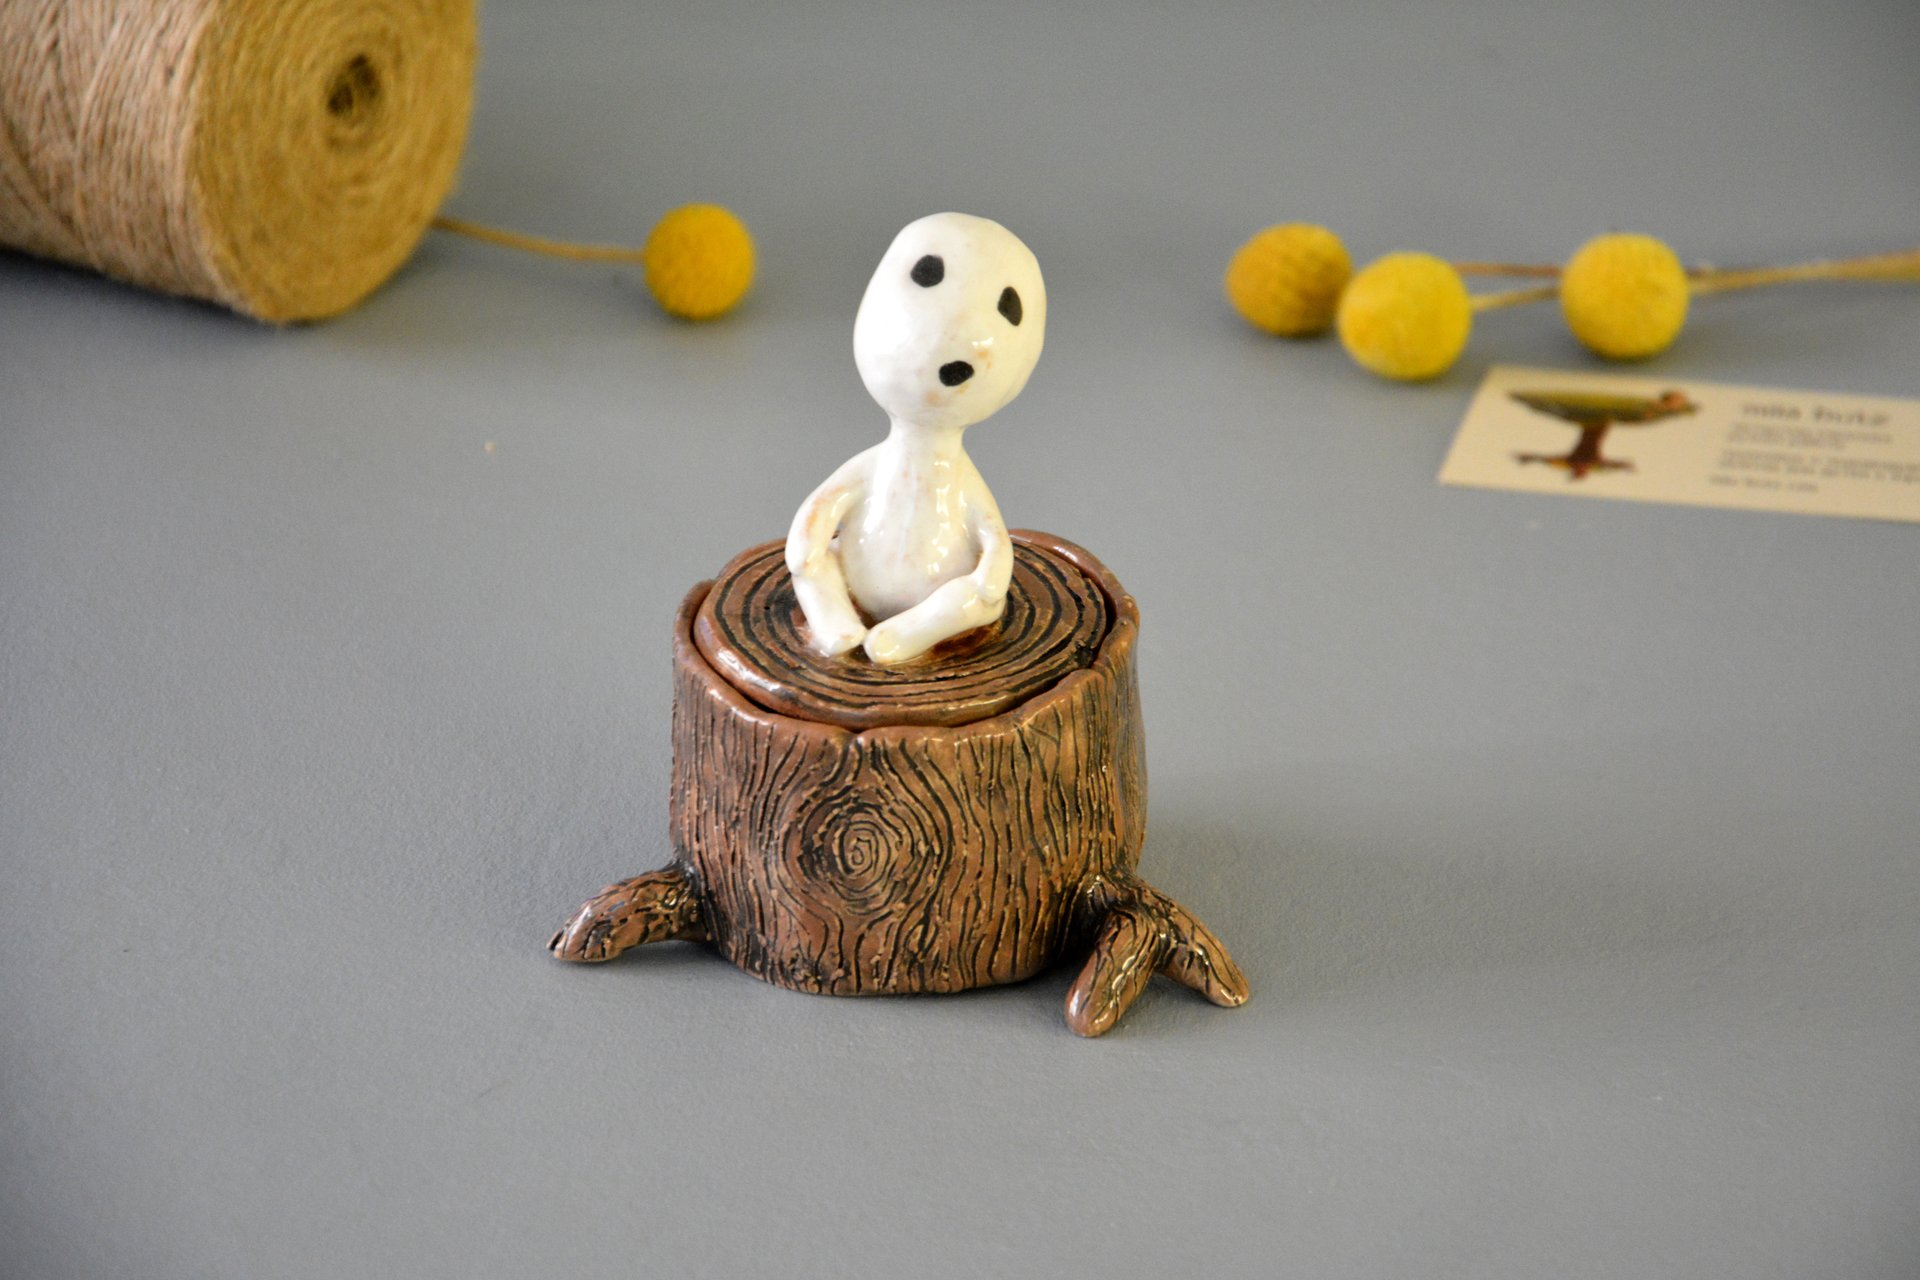 Figurine of the Kodama of tree spirit on the hemp, height - 11 cm, diameter - 6 cm, photo 2 of 4.